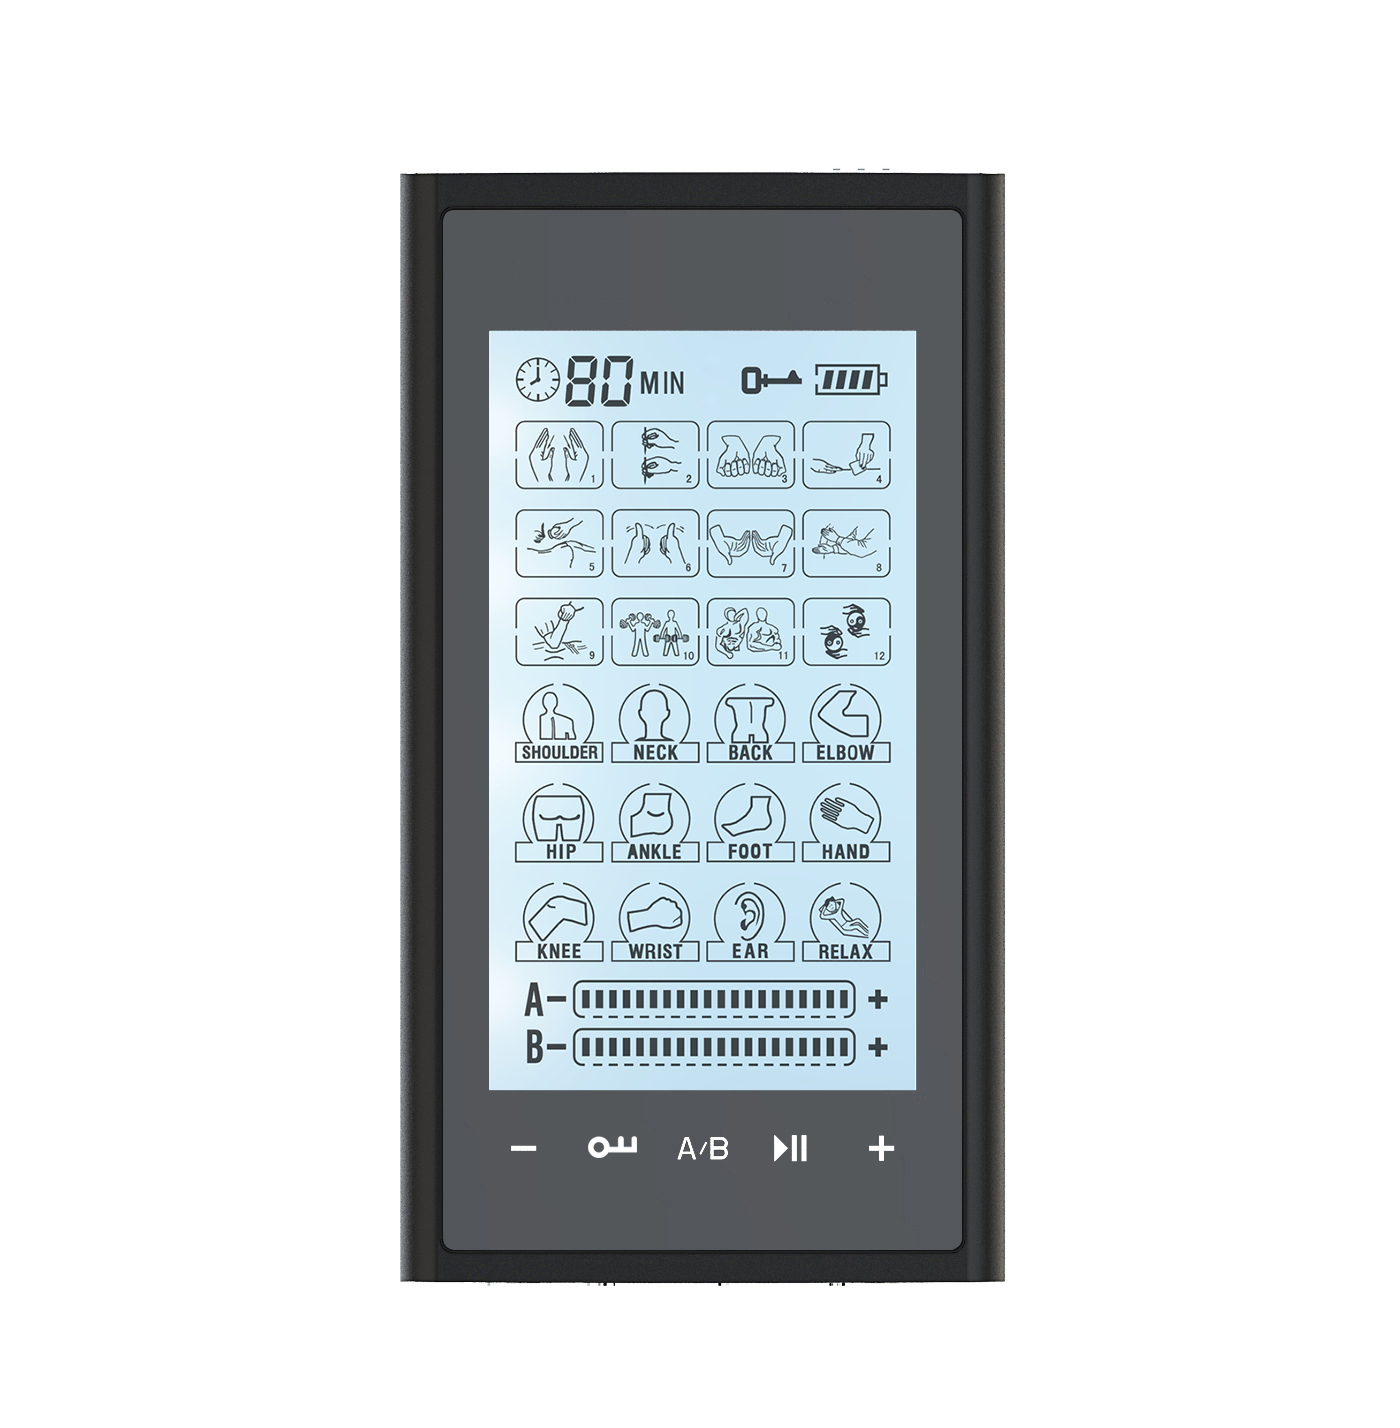 HealthmateForever T24AB2 Touch Screen TENS Unit & Muscle Stimulator (Black On Black)